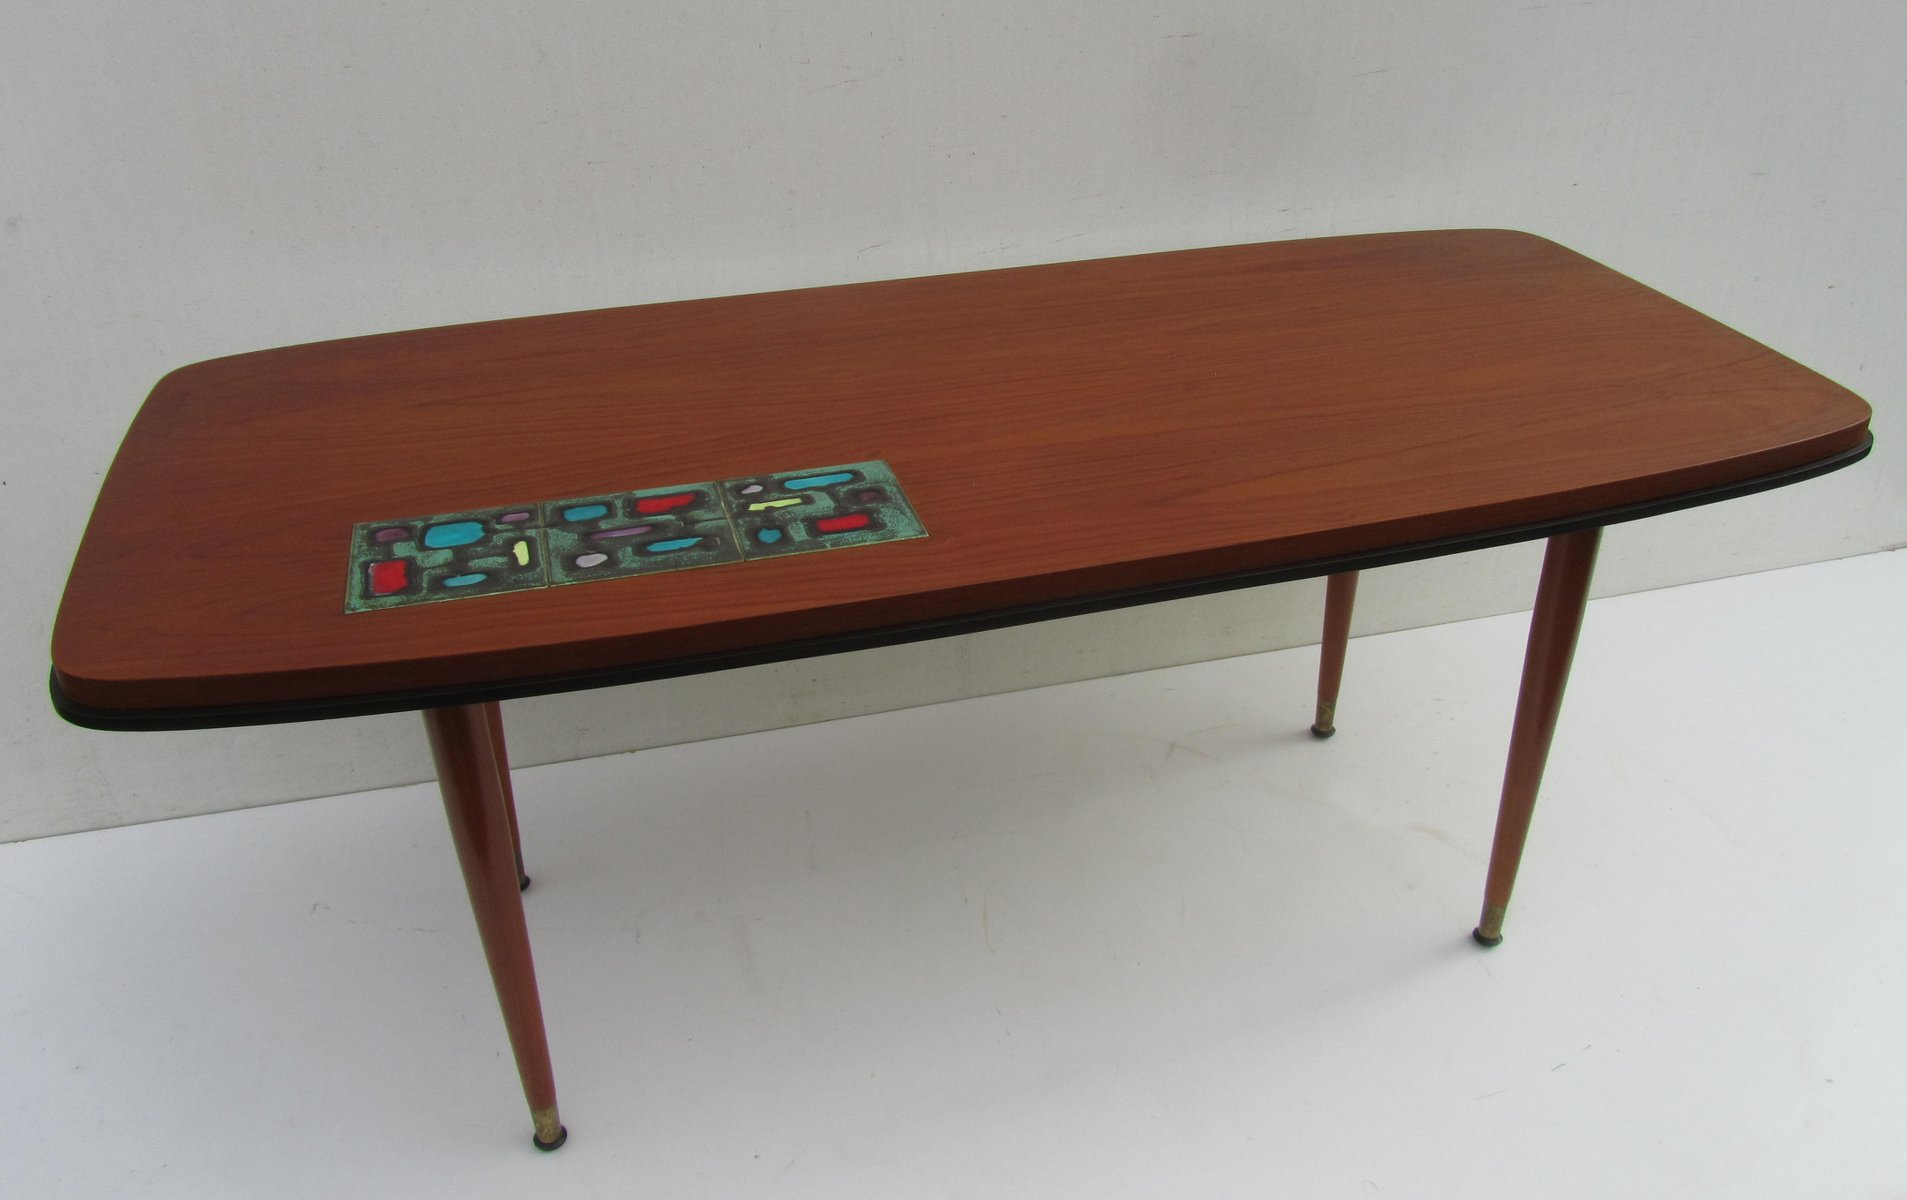 Vintage teak coffee table with ceramic tile 1950s for sale at pamono dailygadgetfo Image collections